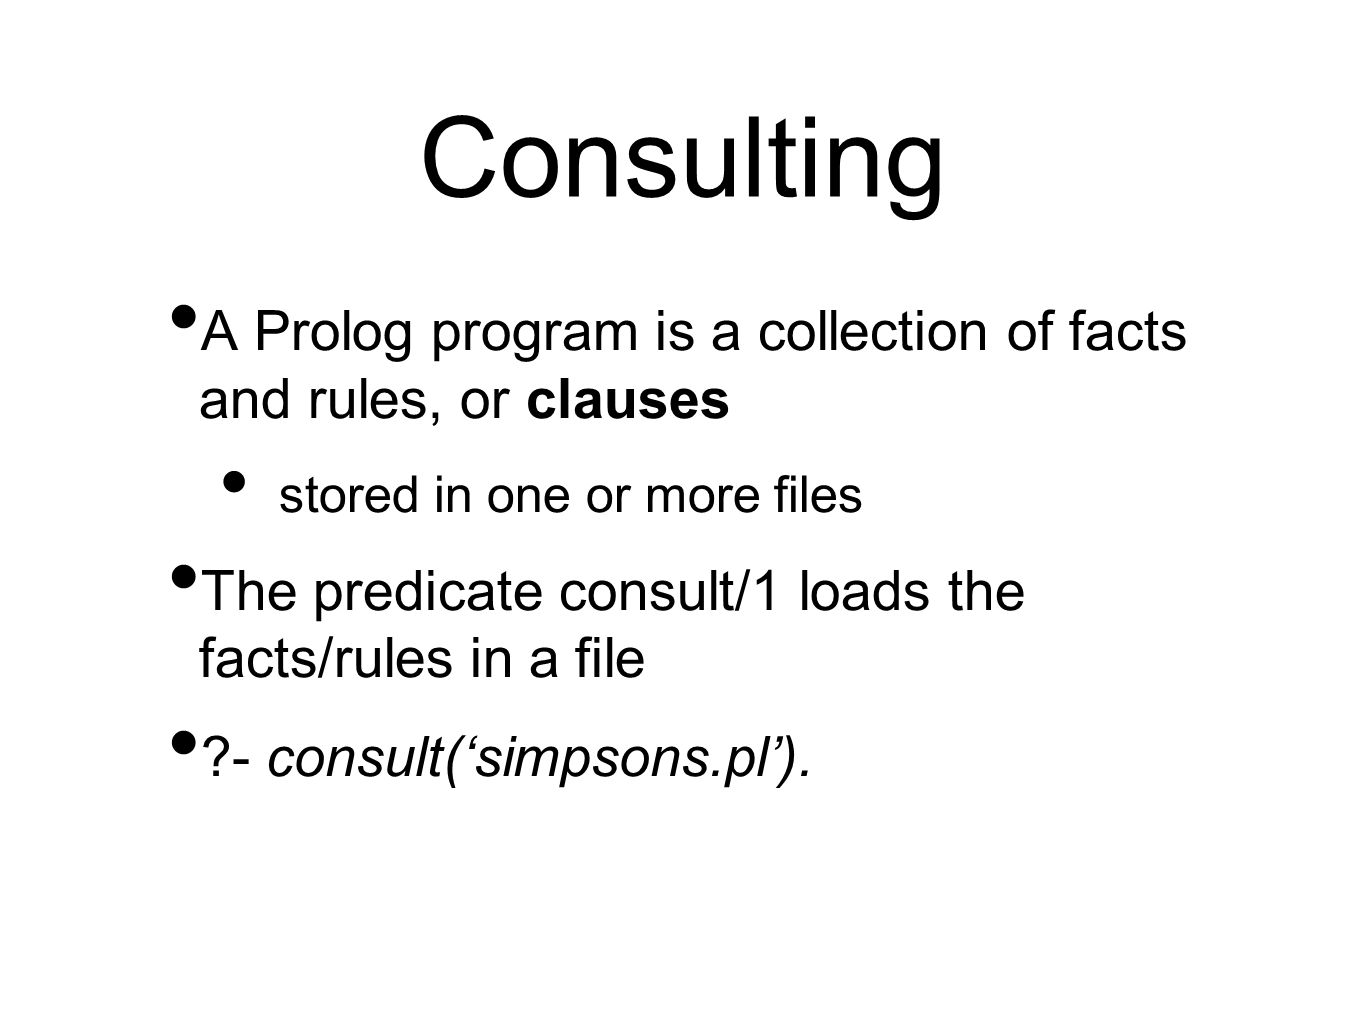 Consulting A Prolog program is a collection of facts and rules, or clauses stored in one or more files The predicate consult/1 loads the facts/rules in a file ?- consult('simpsons.pl').